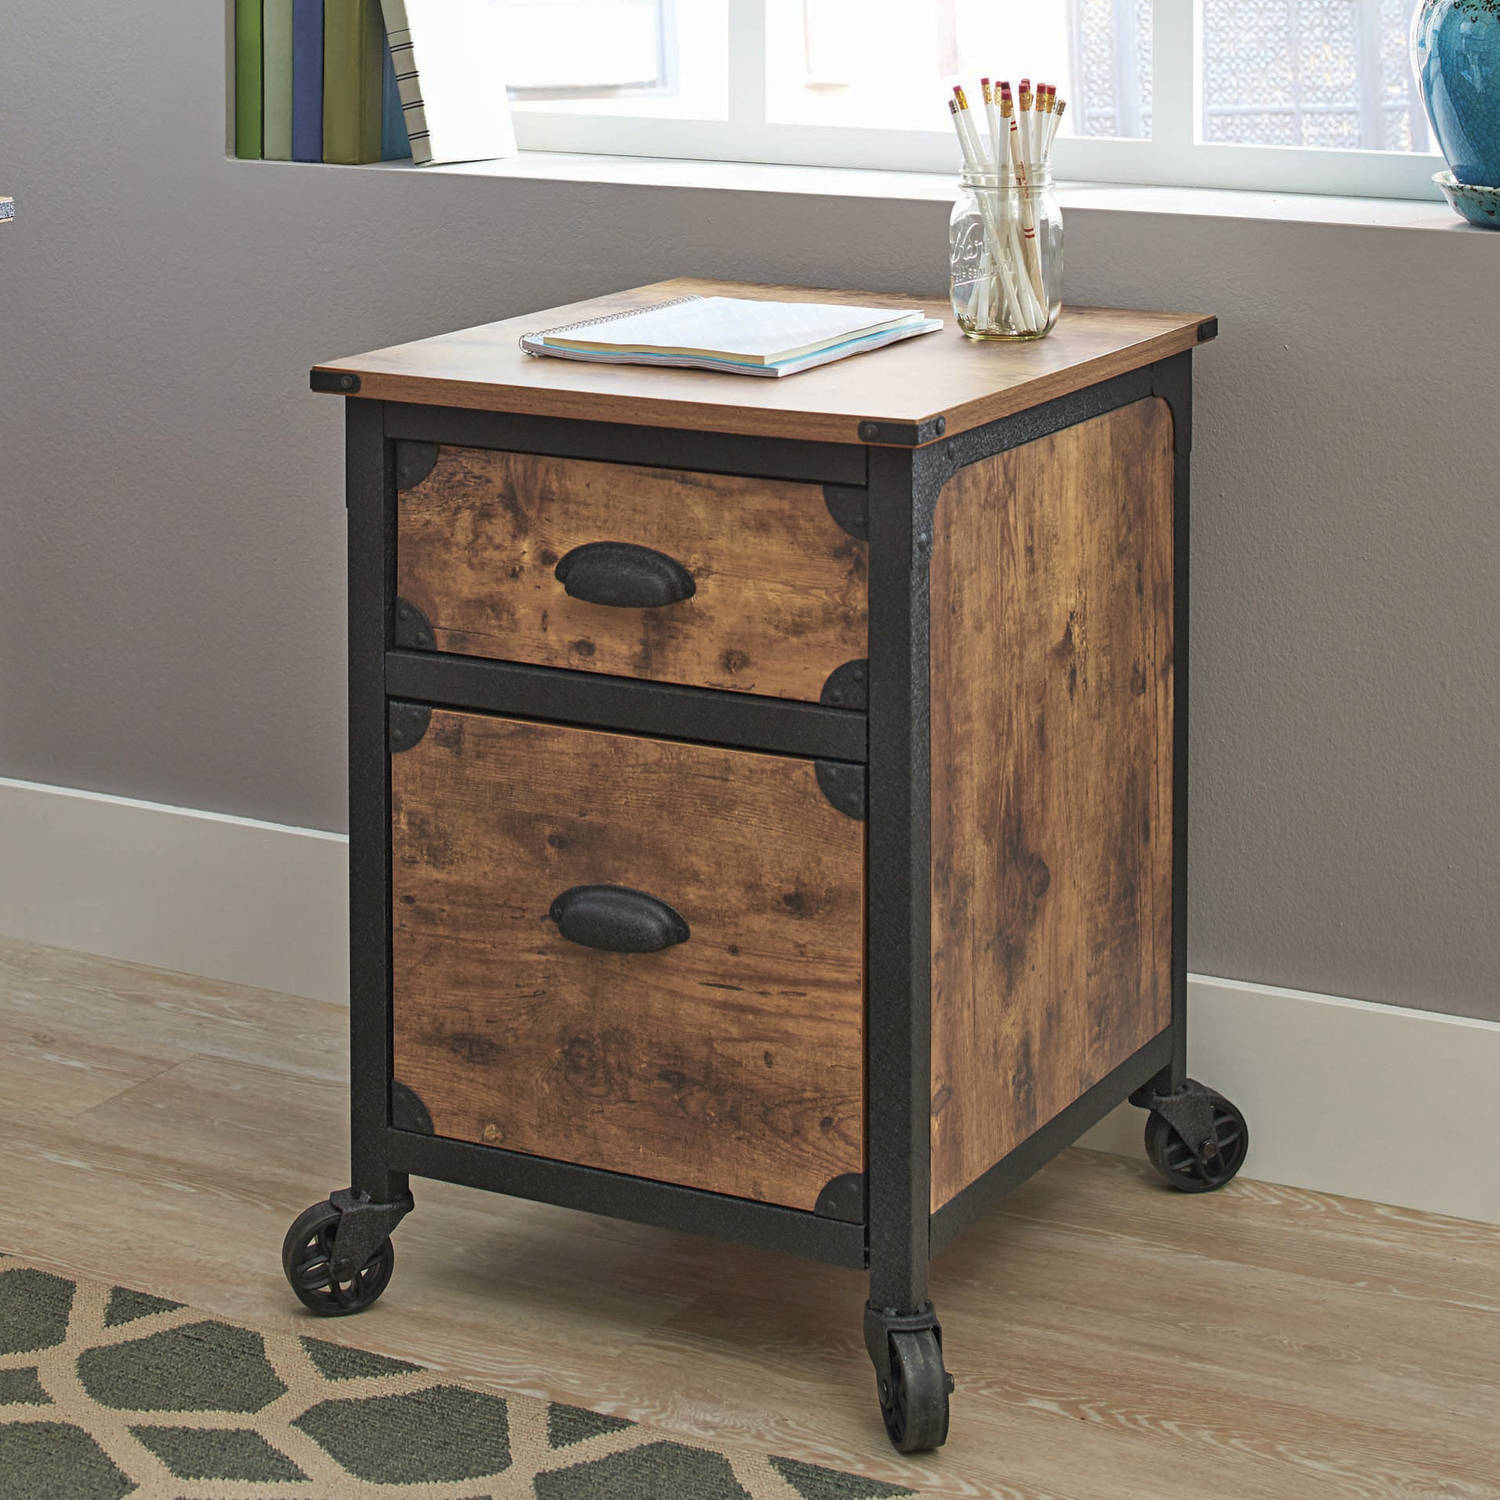 nightstand filing hei single reviews zoom ainsworth hero file and web furn walnut cabinet wid barrel crate